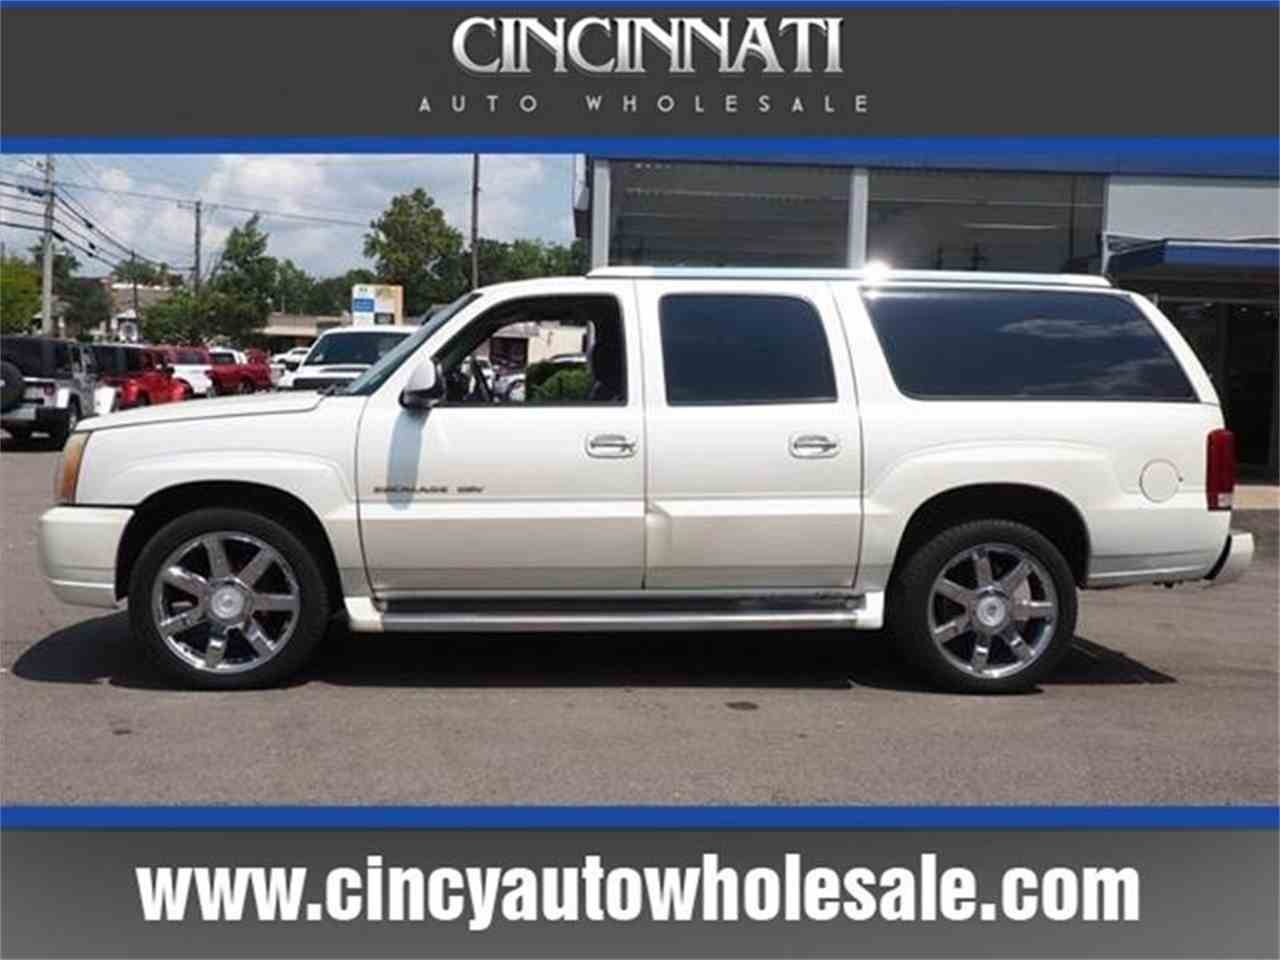 Large Picture of '03 Cadillac Escalade Offered by Cincinnati Auto Wholesale - MBL6